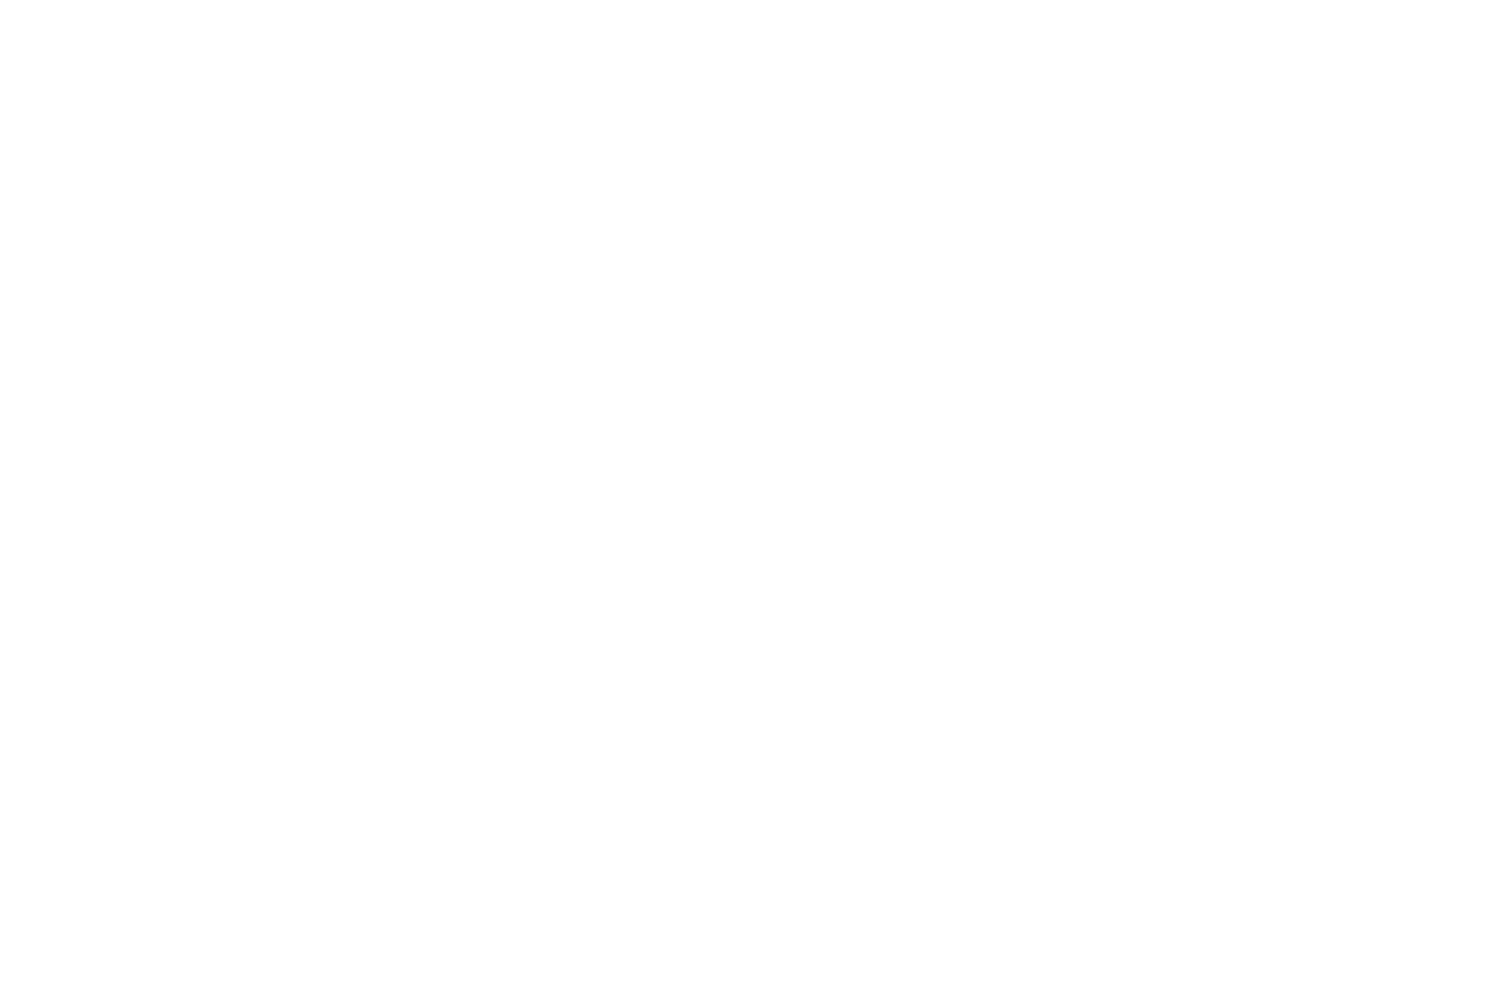 Athletek PT & Performance